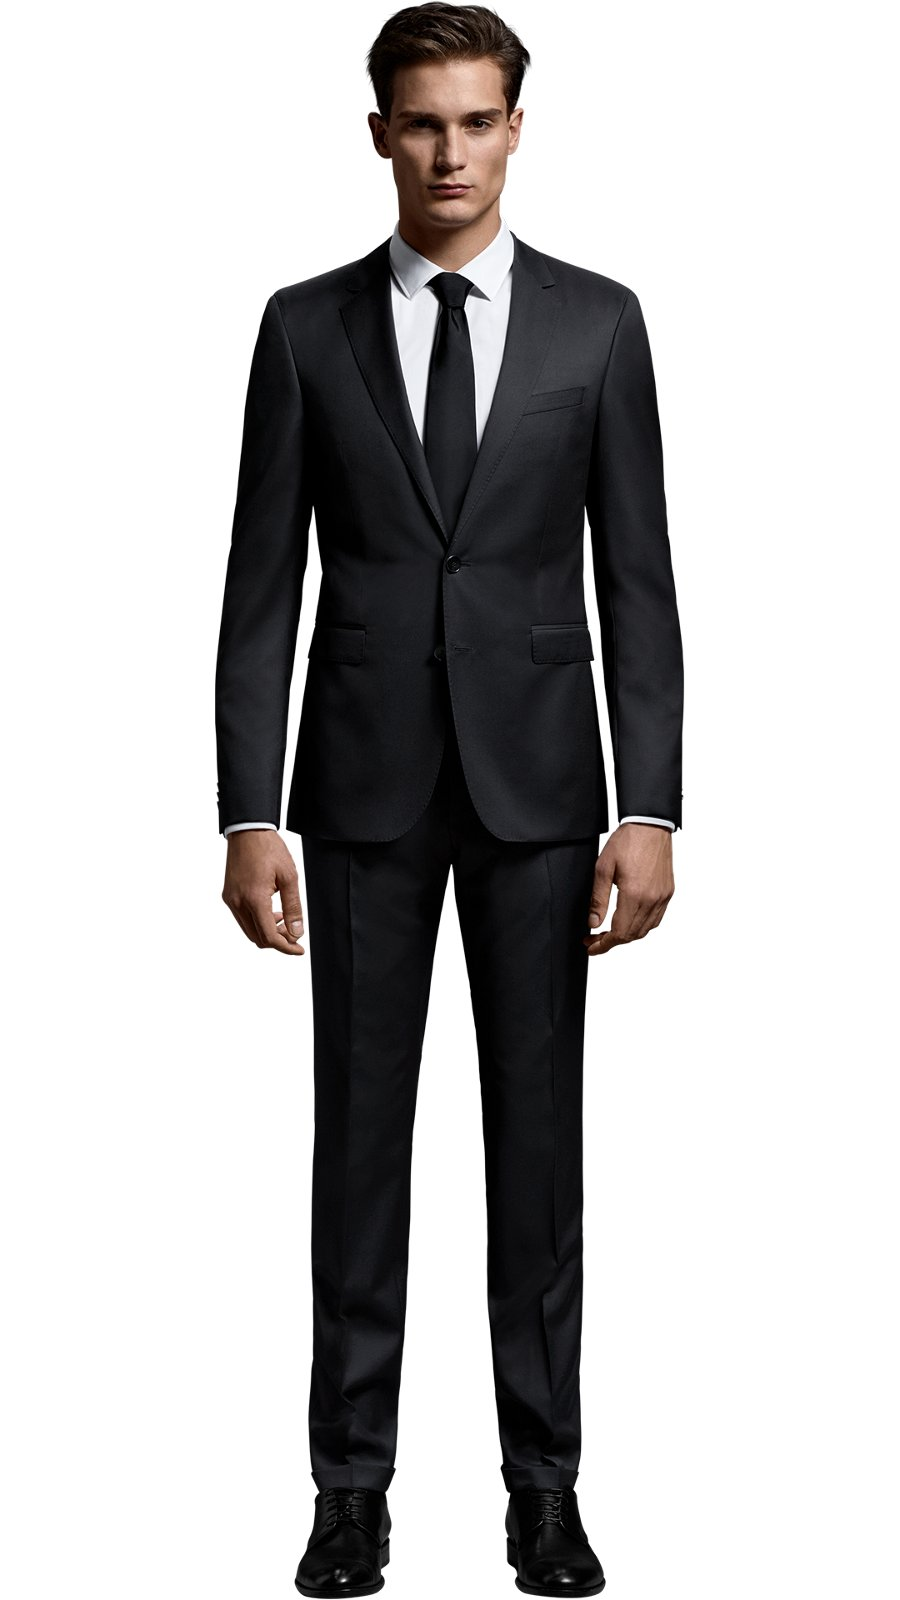 1e25bc442 Man wearing a mix and match black suit from Create your look collection by  BOSS ...